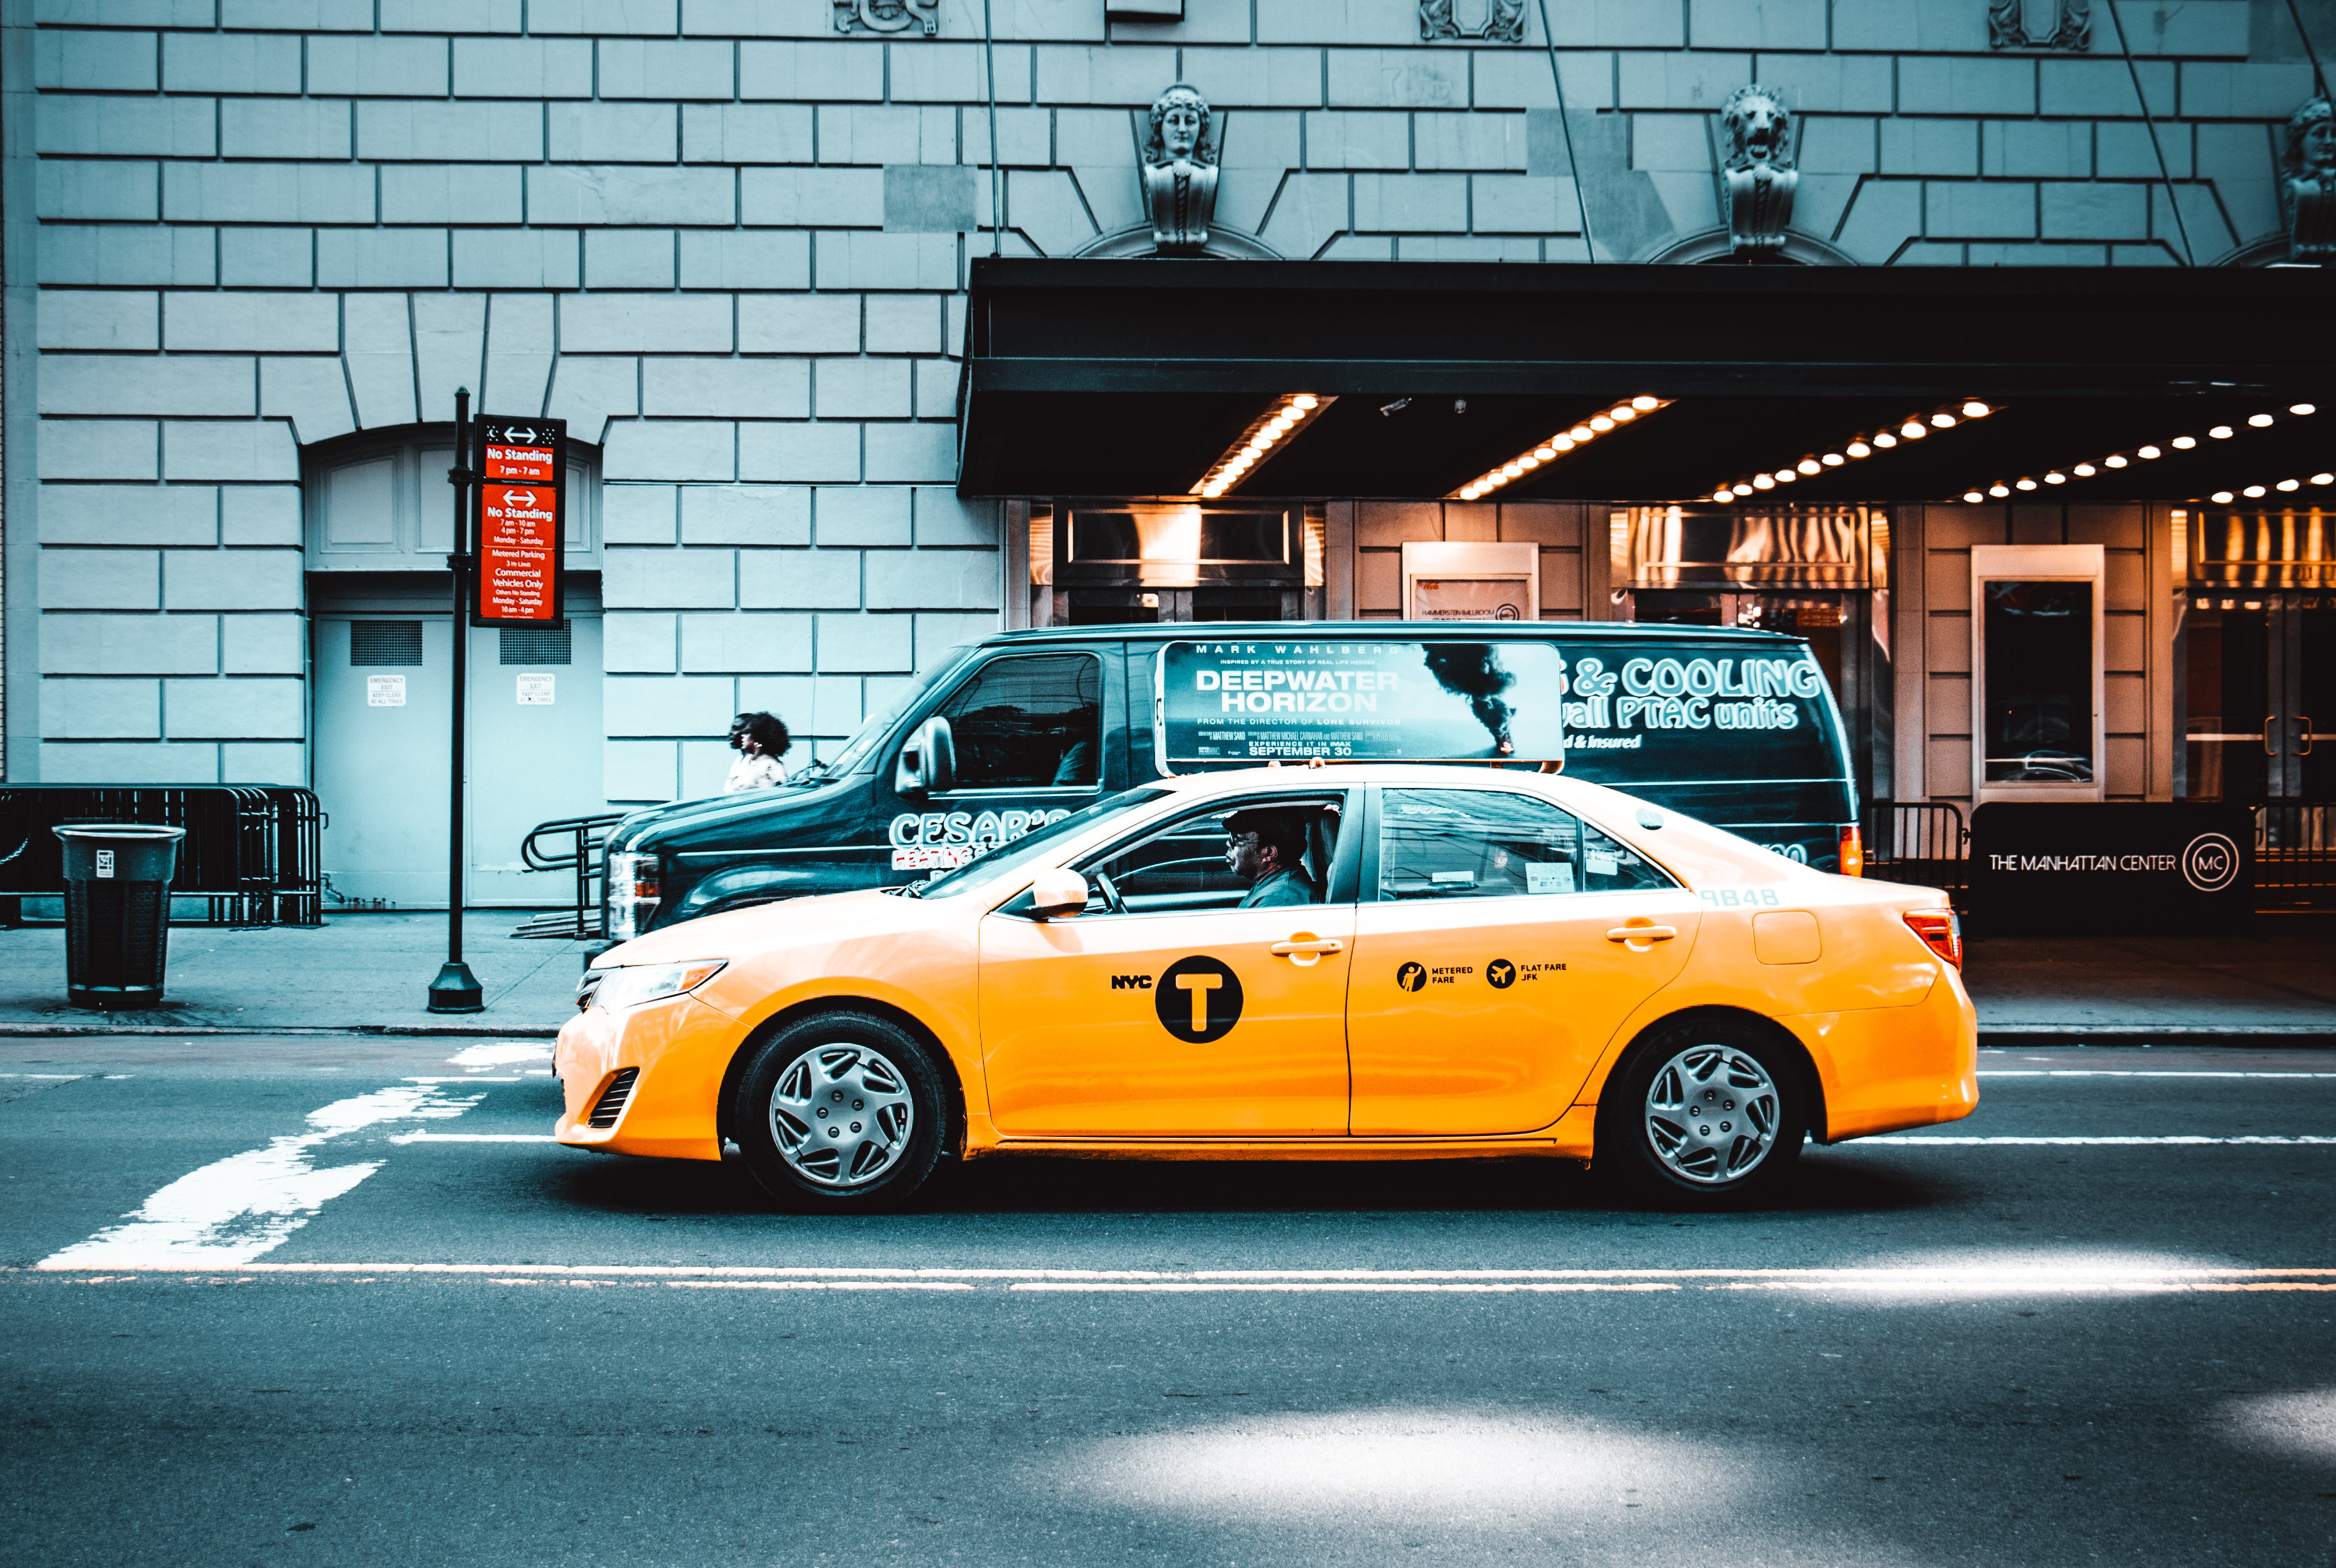 Kostenloses Stock Foto zu gelbes taxi, new york, new york city, taxi